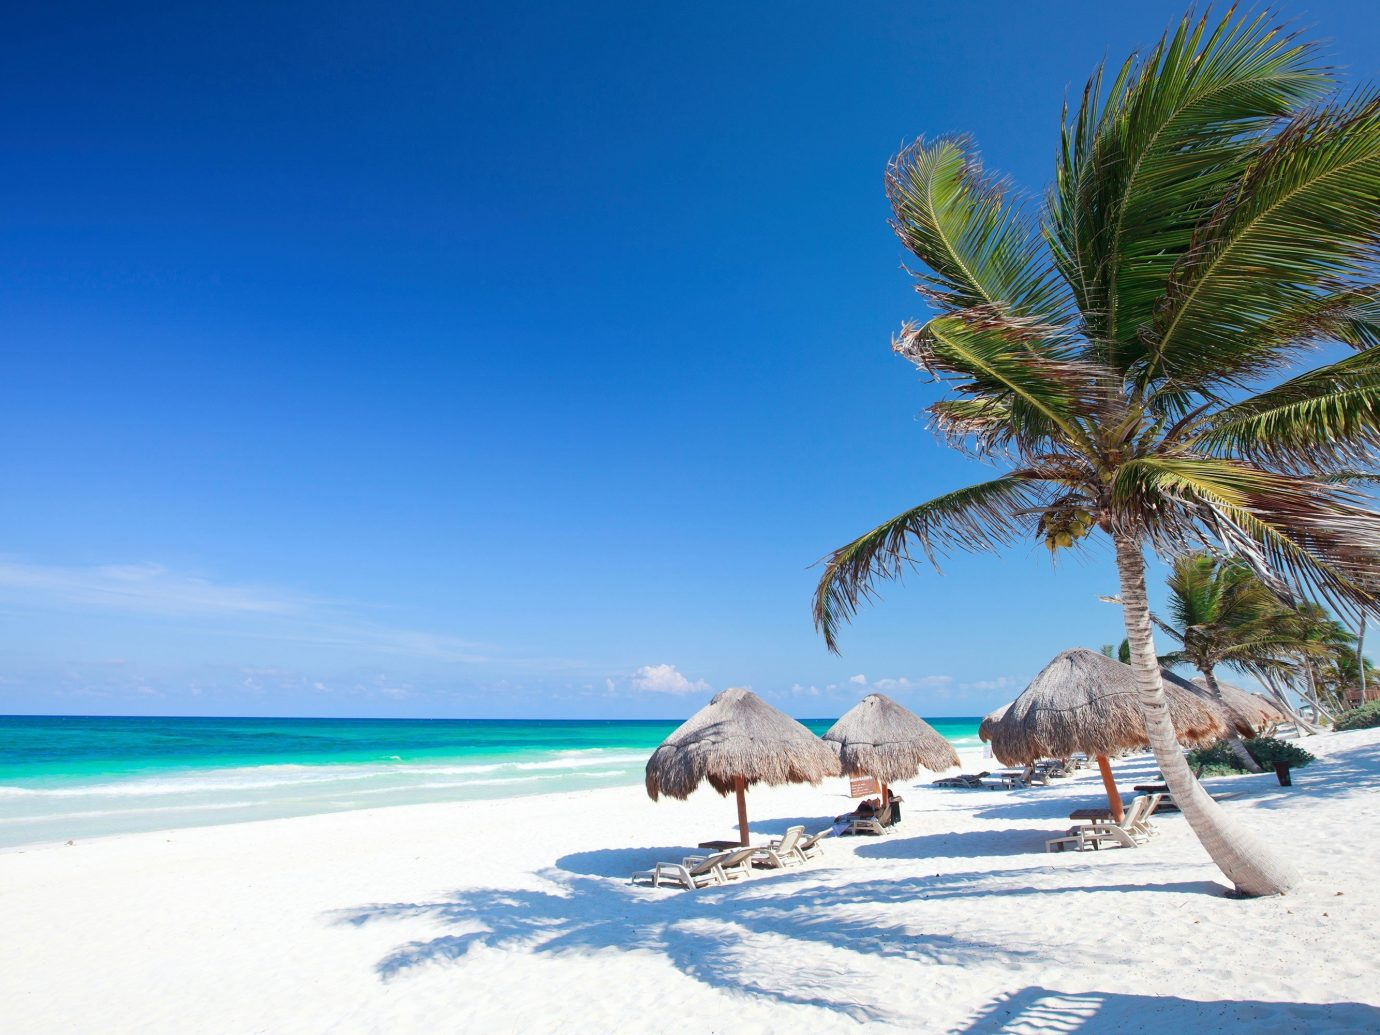 palm hut umbrellas on a sandy beach in Tulum